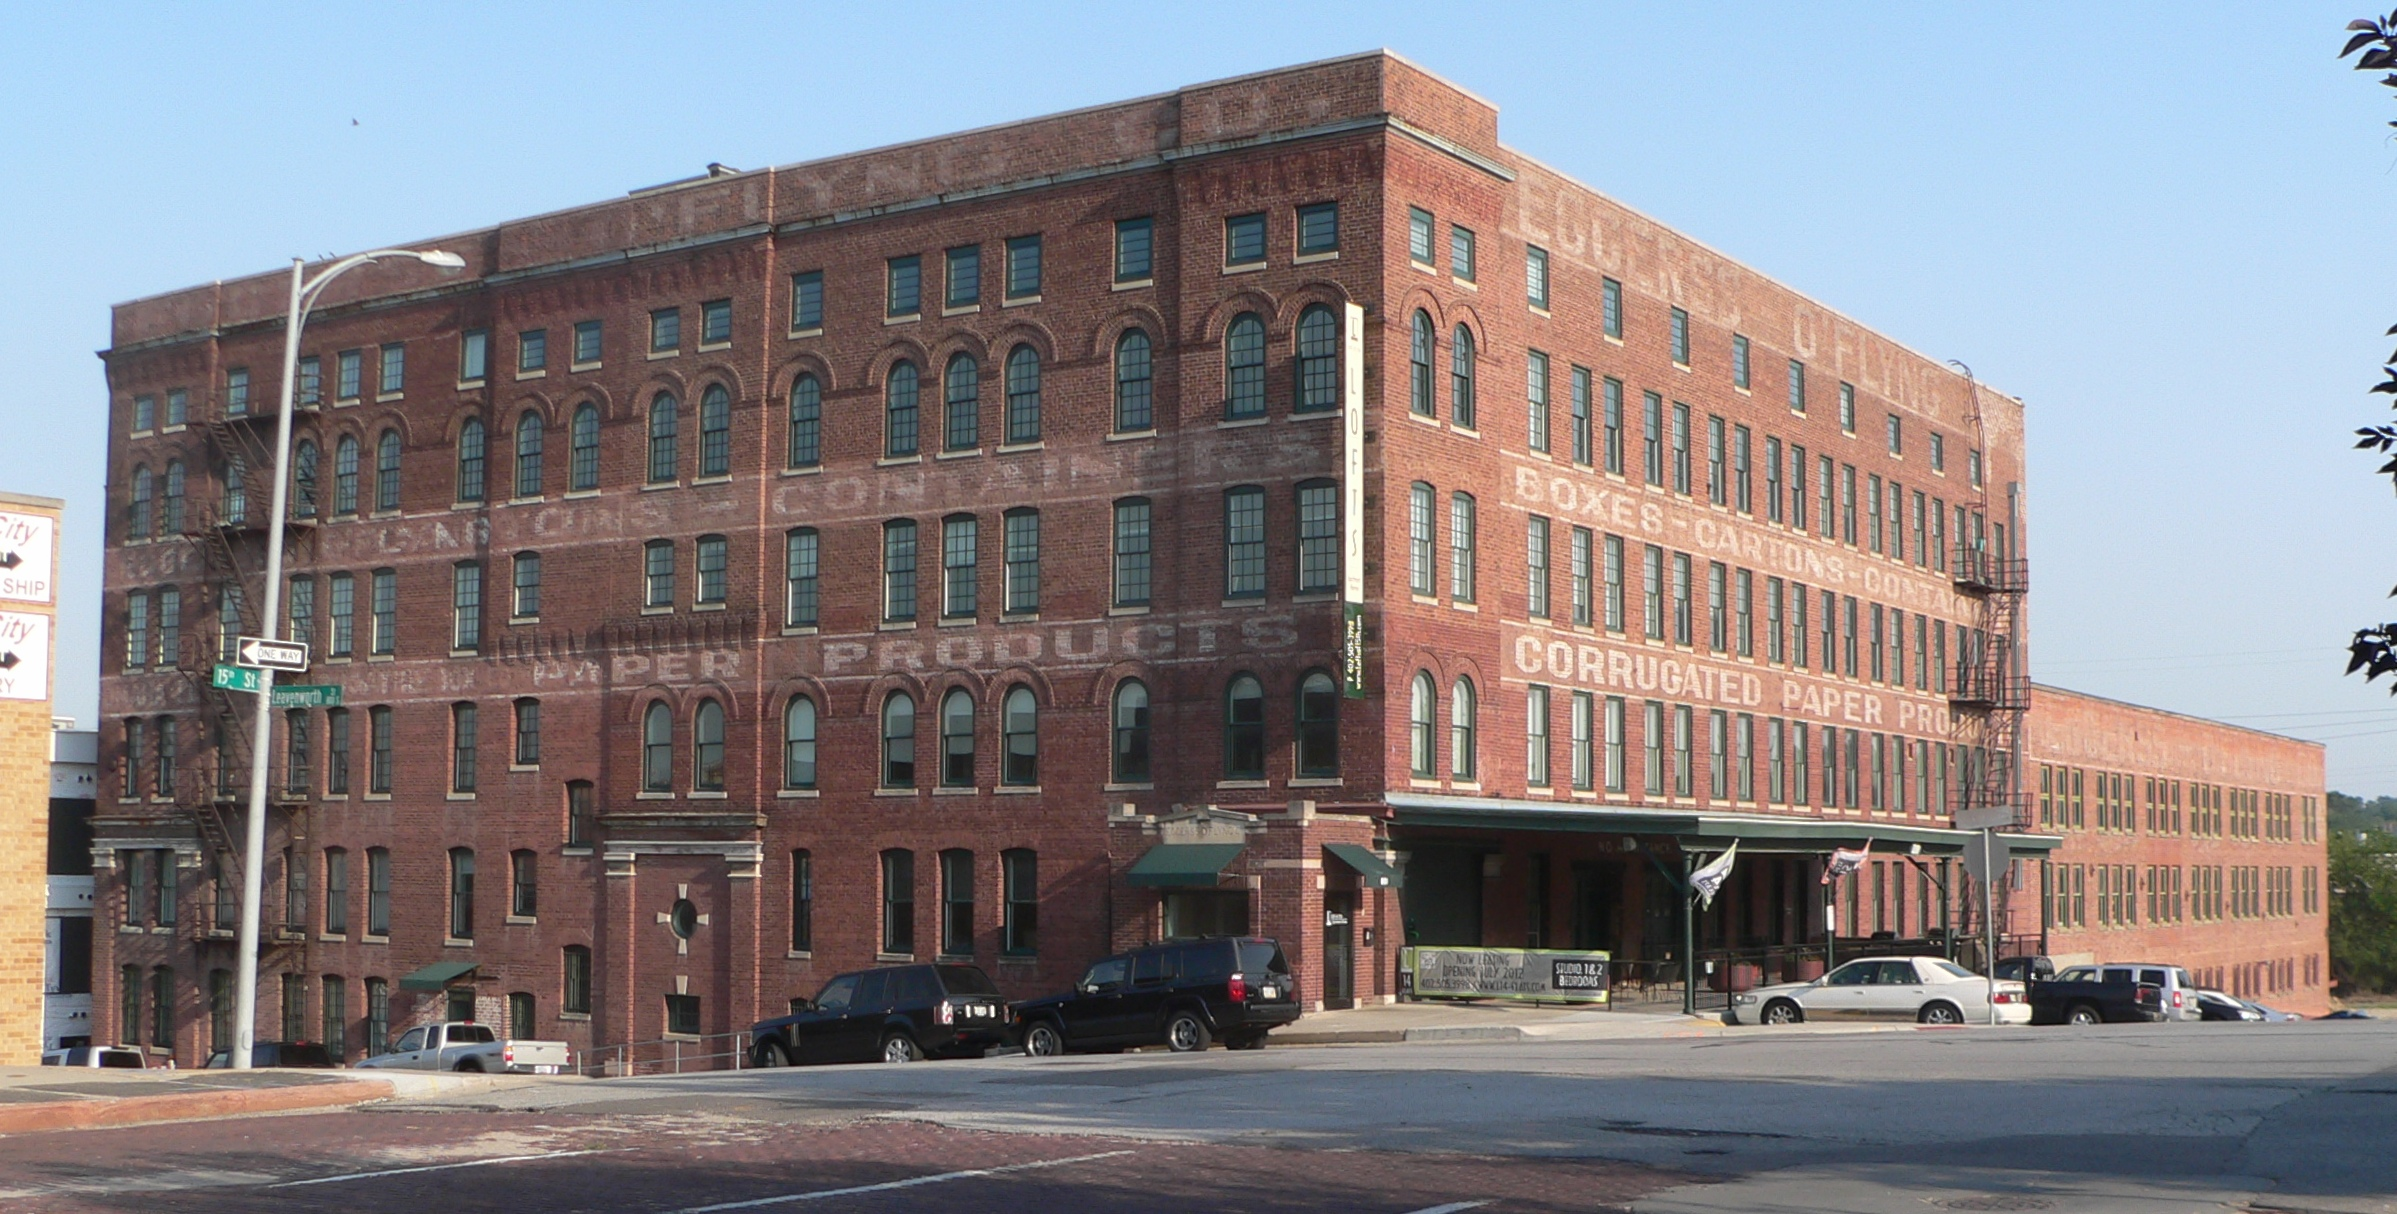 Six-story Section: Built in four phases, the largest of the building's four structures is seen in the foreground. The Eggerss-O'Flyng Company markings are clearly visible on this classic, early twentieth-century warehouse.